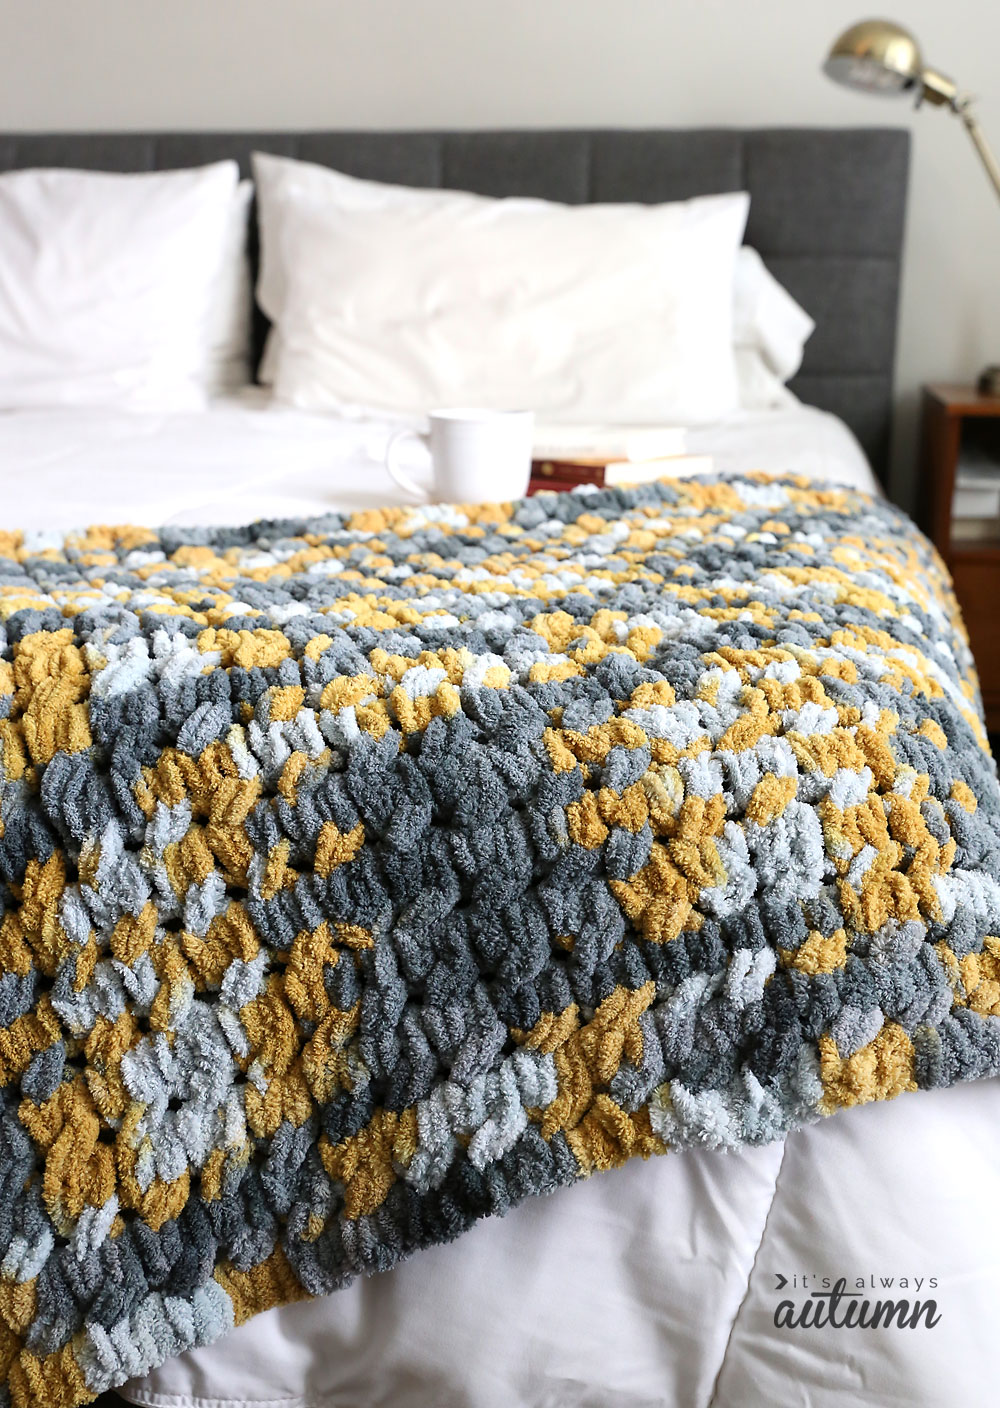 It's super easy to make this pretty cable knit blanket using looping yarn! You can finger knit without needles or any knitting experience.